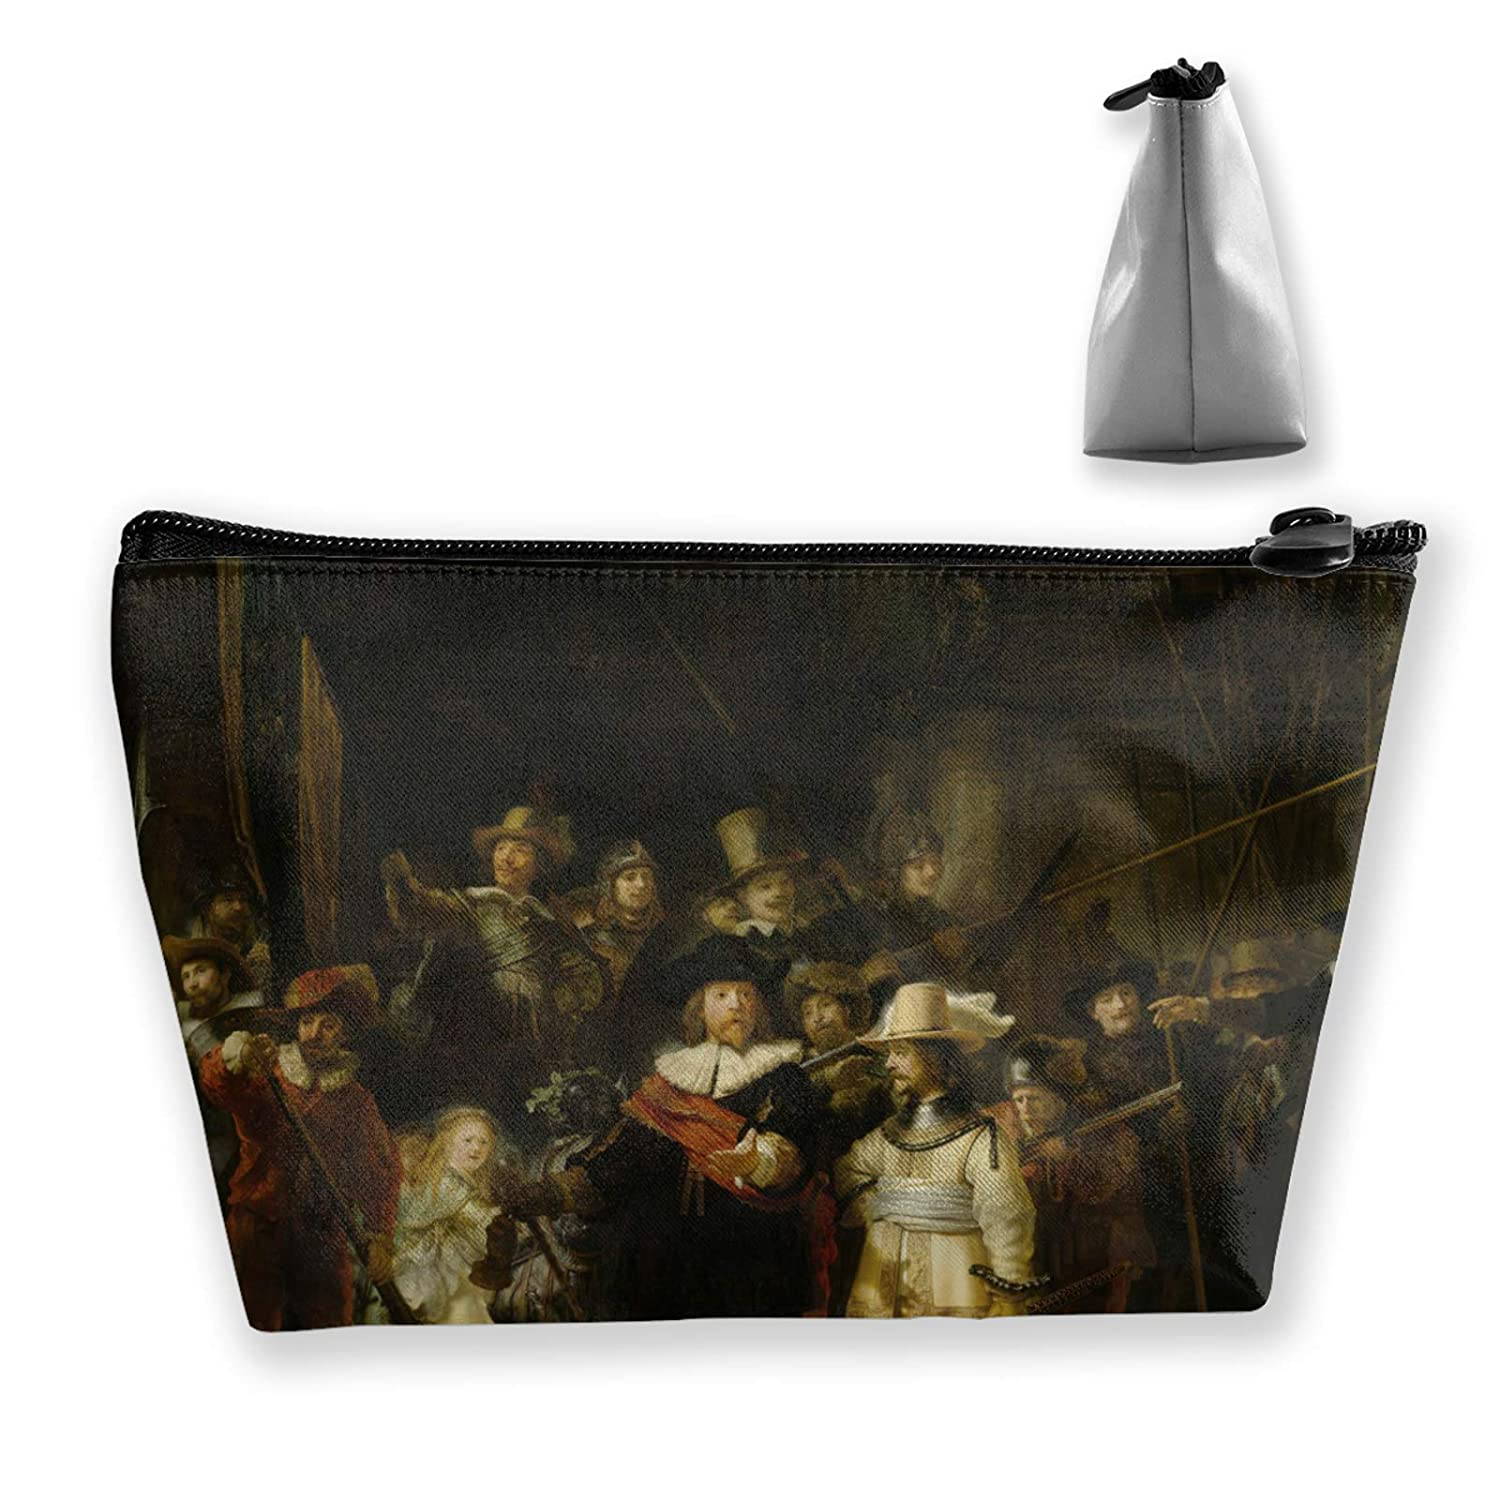 The Night Watch Rembrandt Makeup Pouch For Women Girls Ladies Portable Artist For Toiletry Digital Accessories Travel